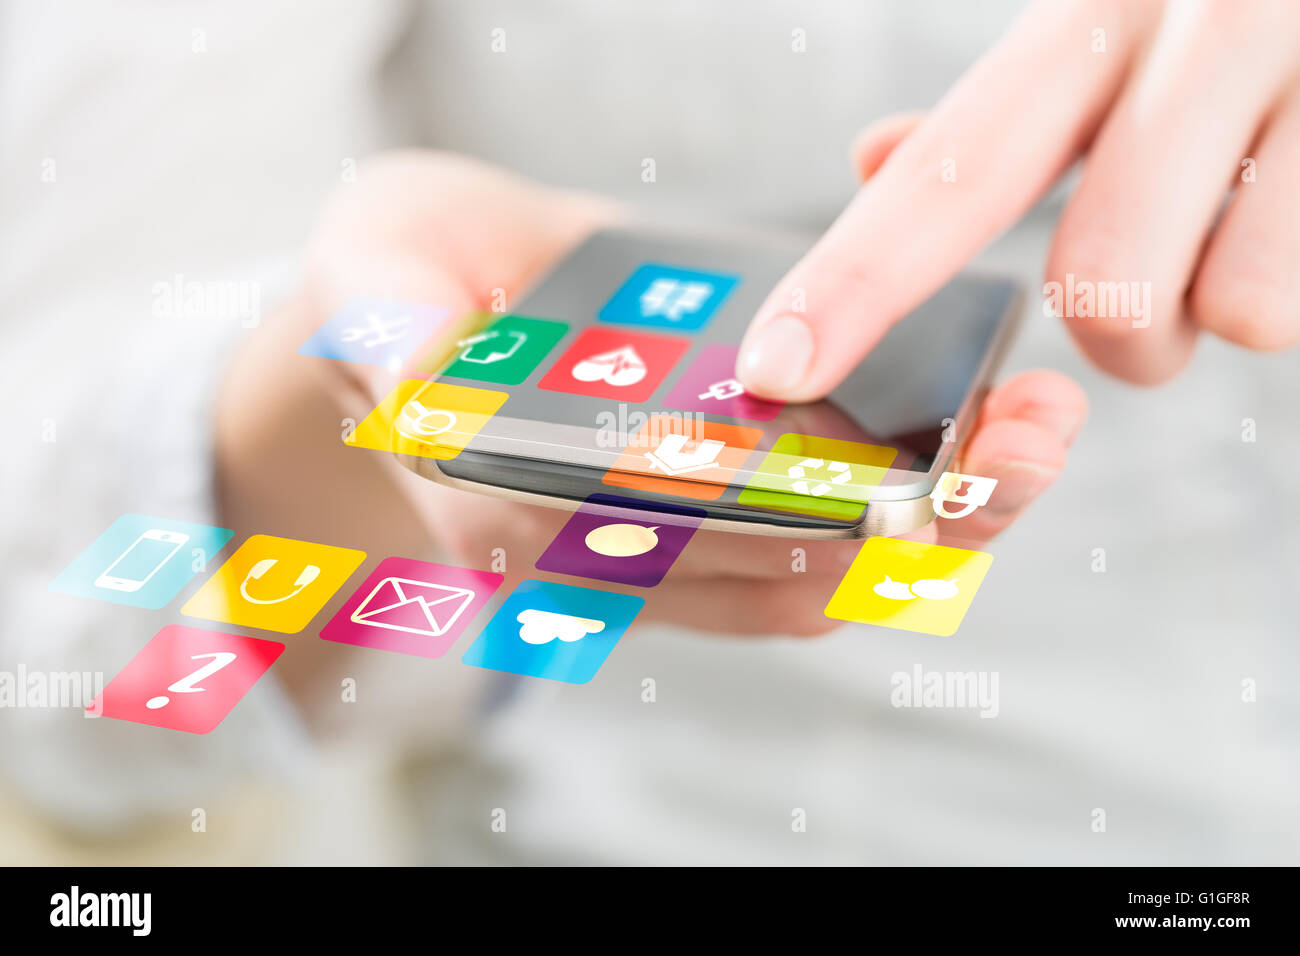 Social media network concept on phone. - Stock Image